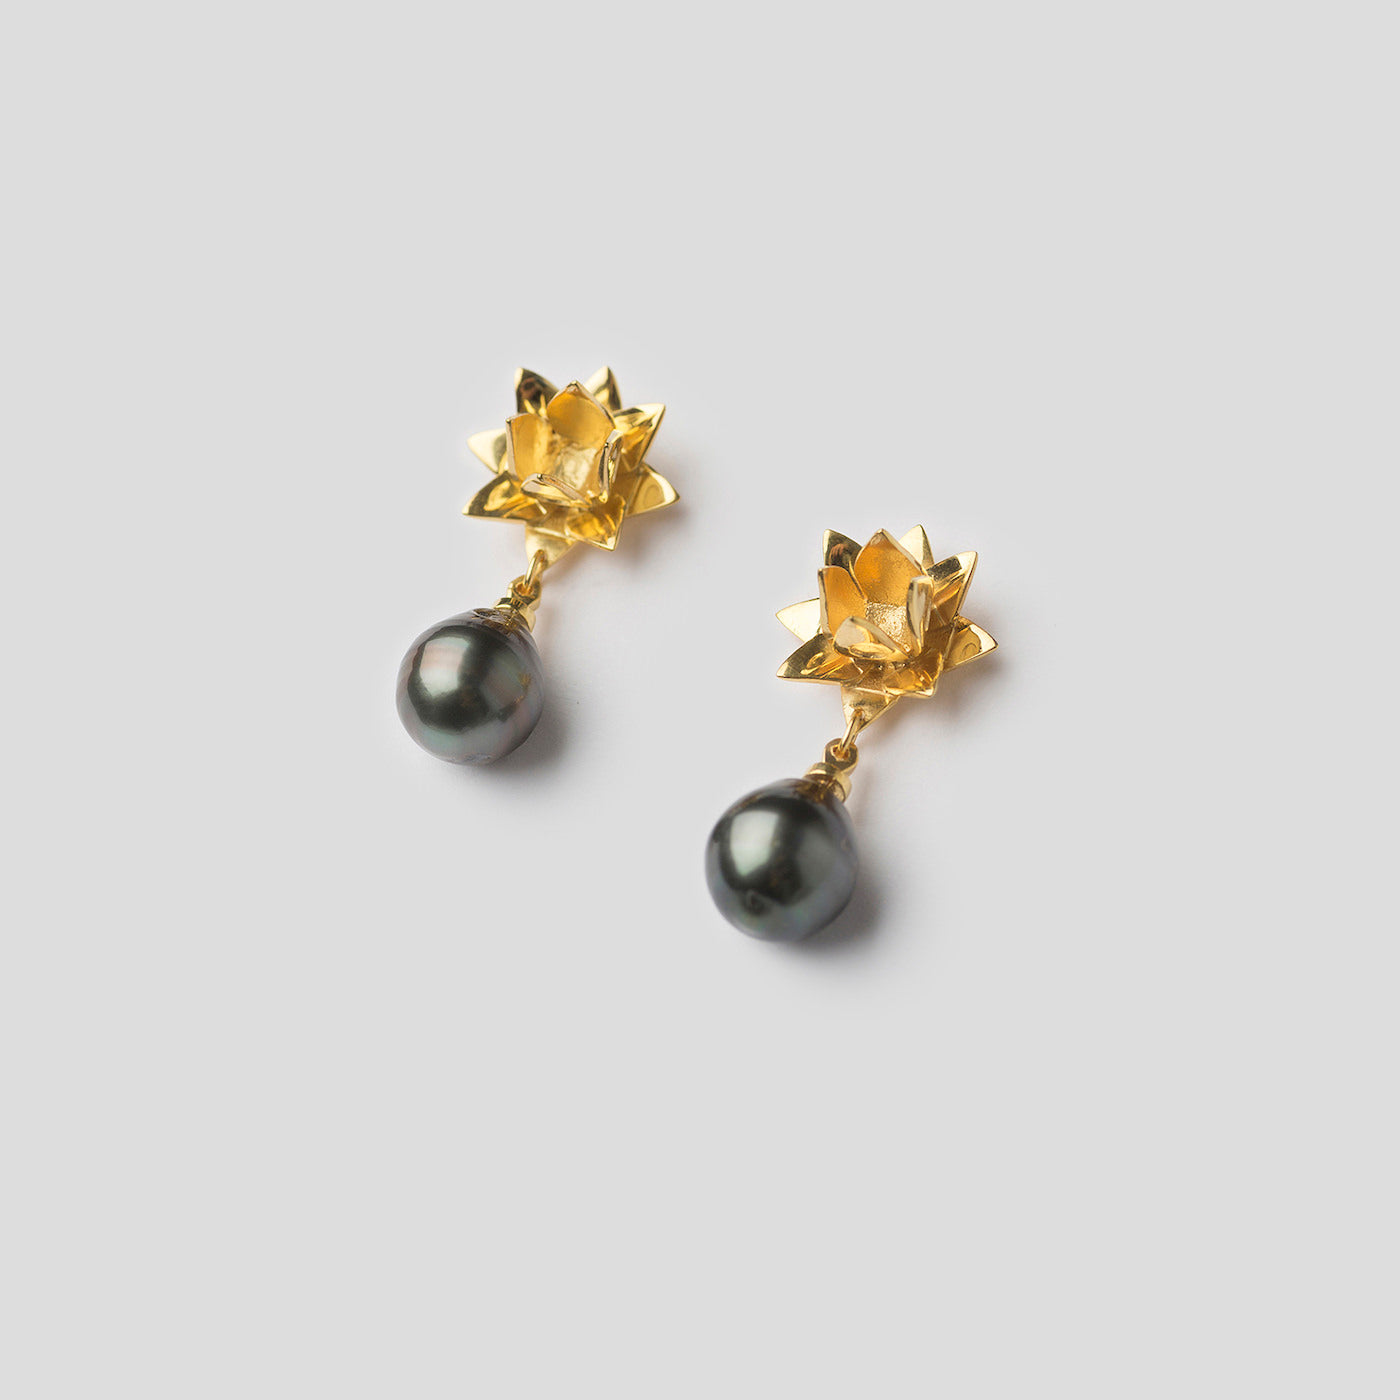 gold lotus earrings with Tahitian pearl on white background